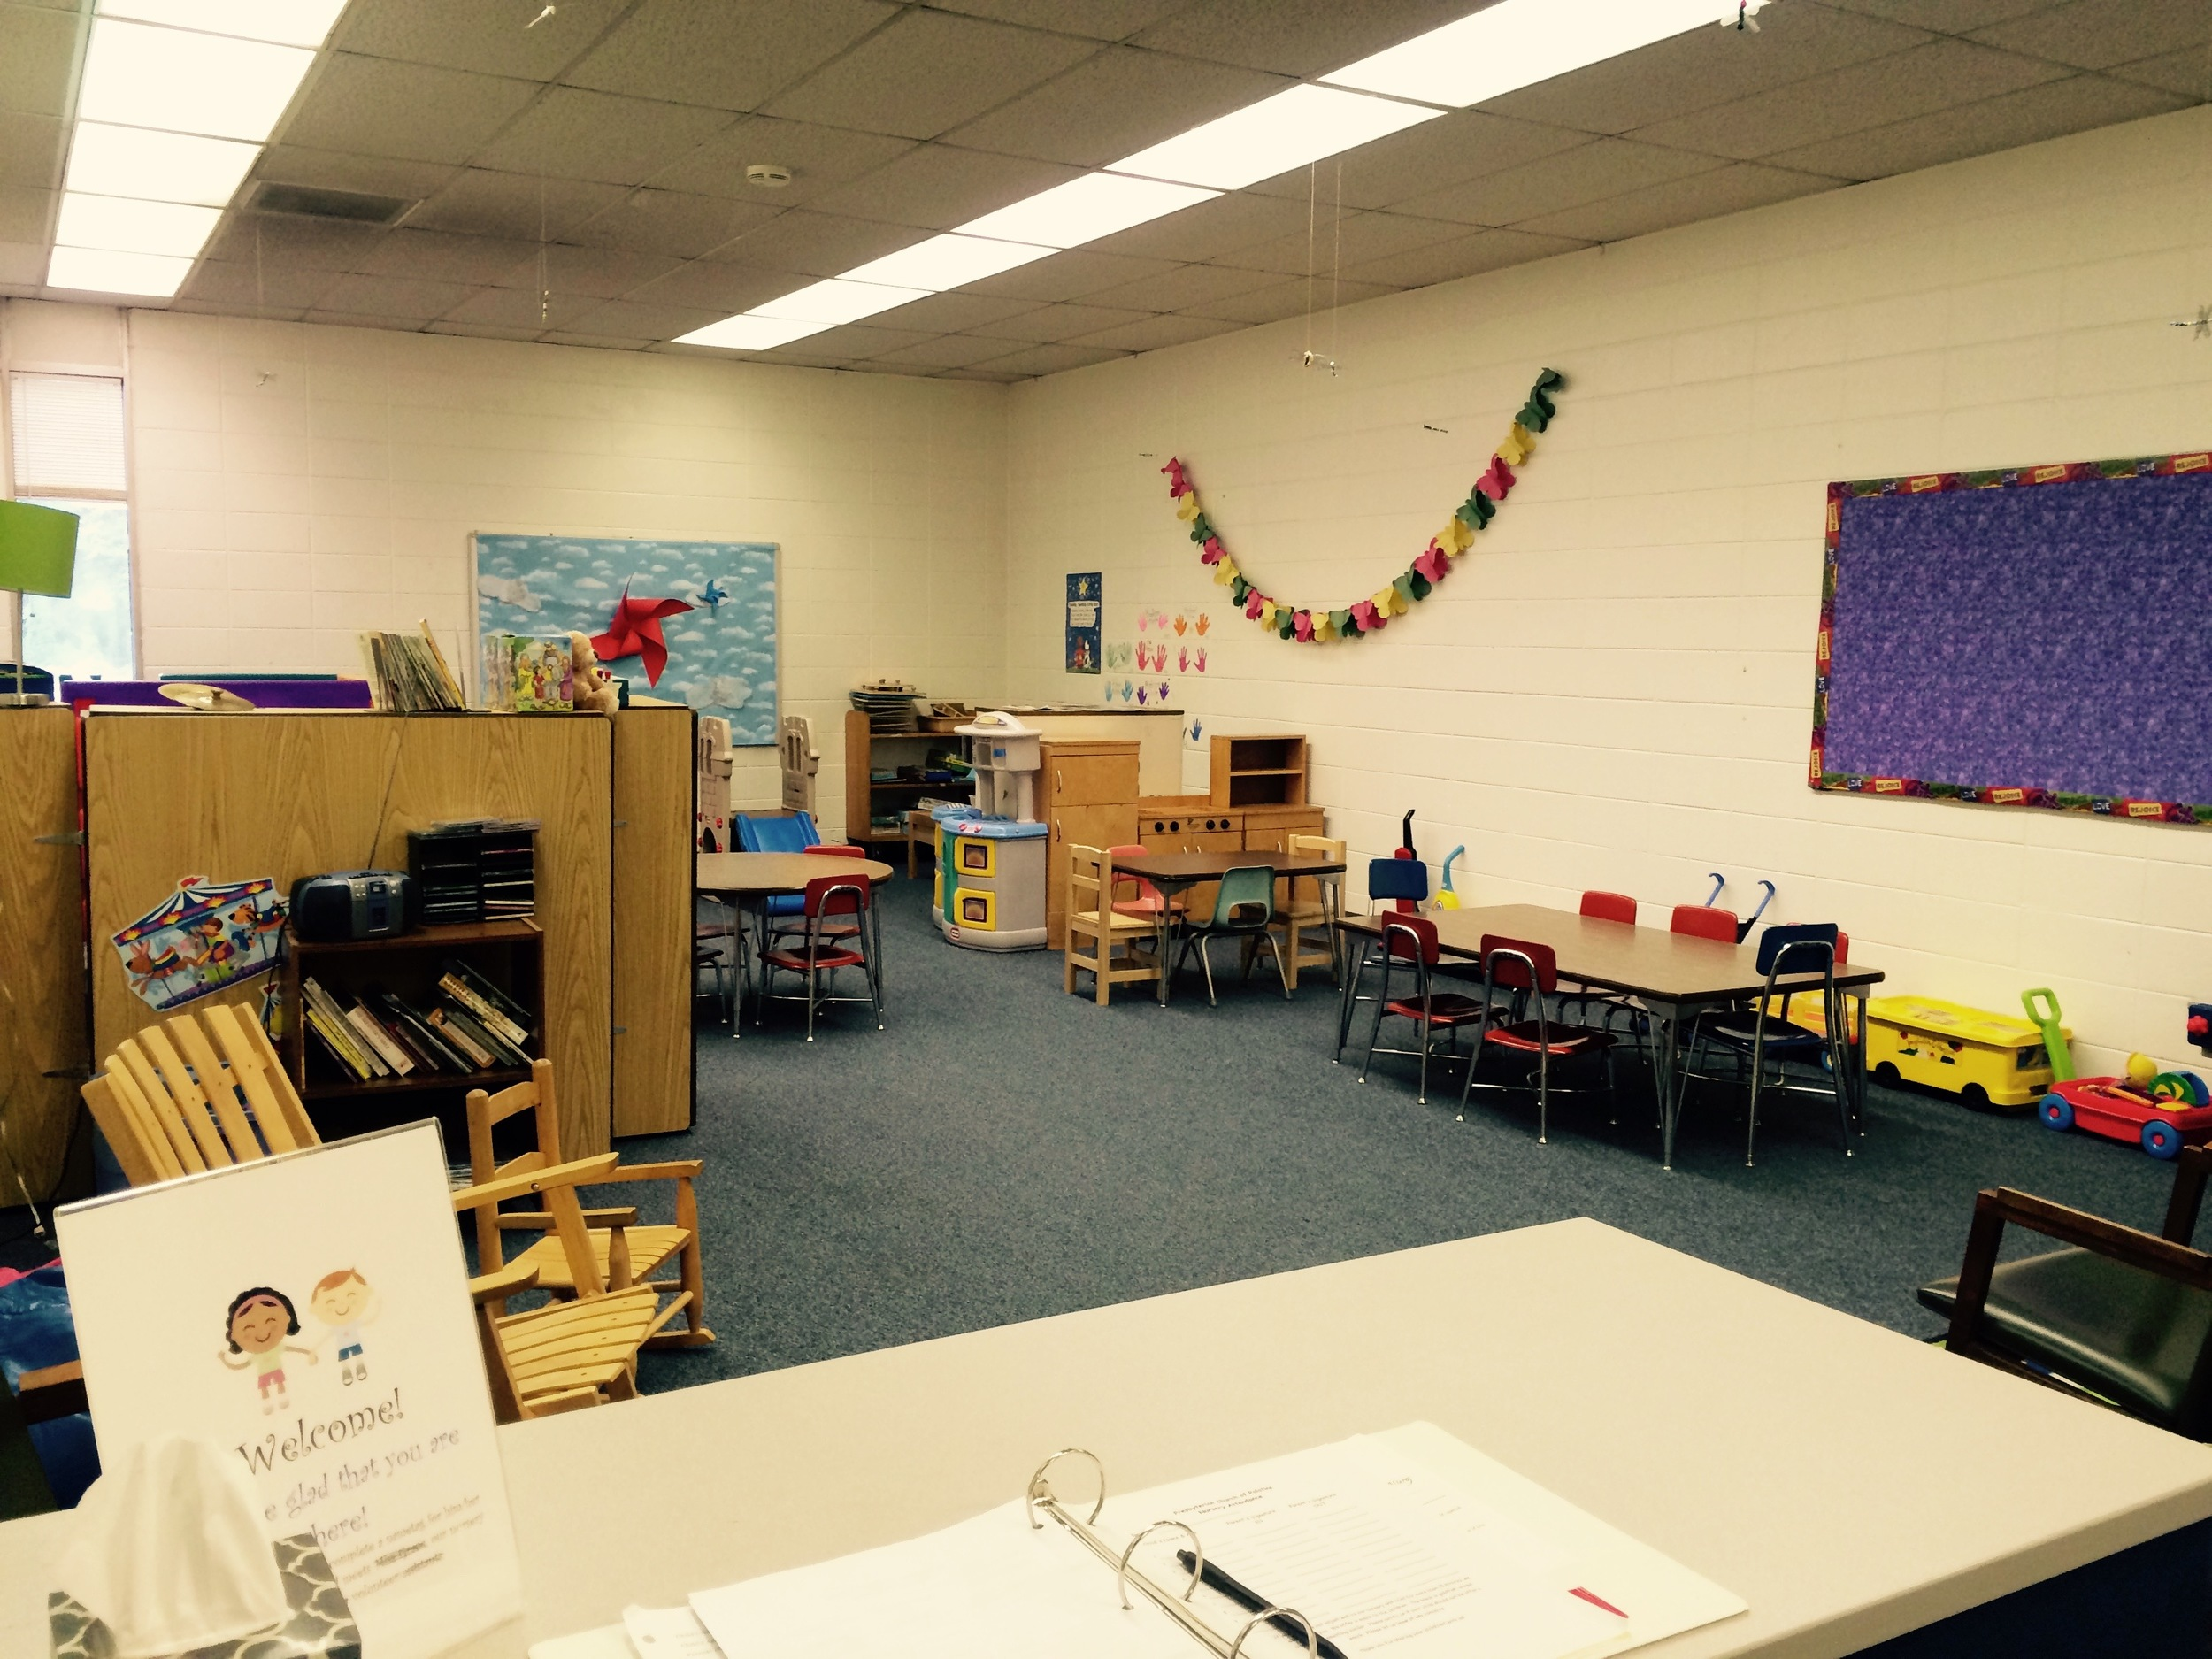 Nursery--ready for fun and learning!